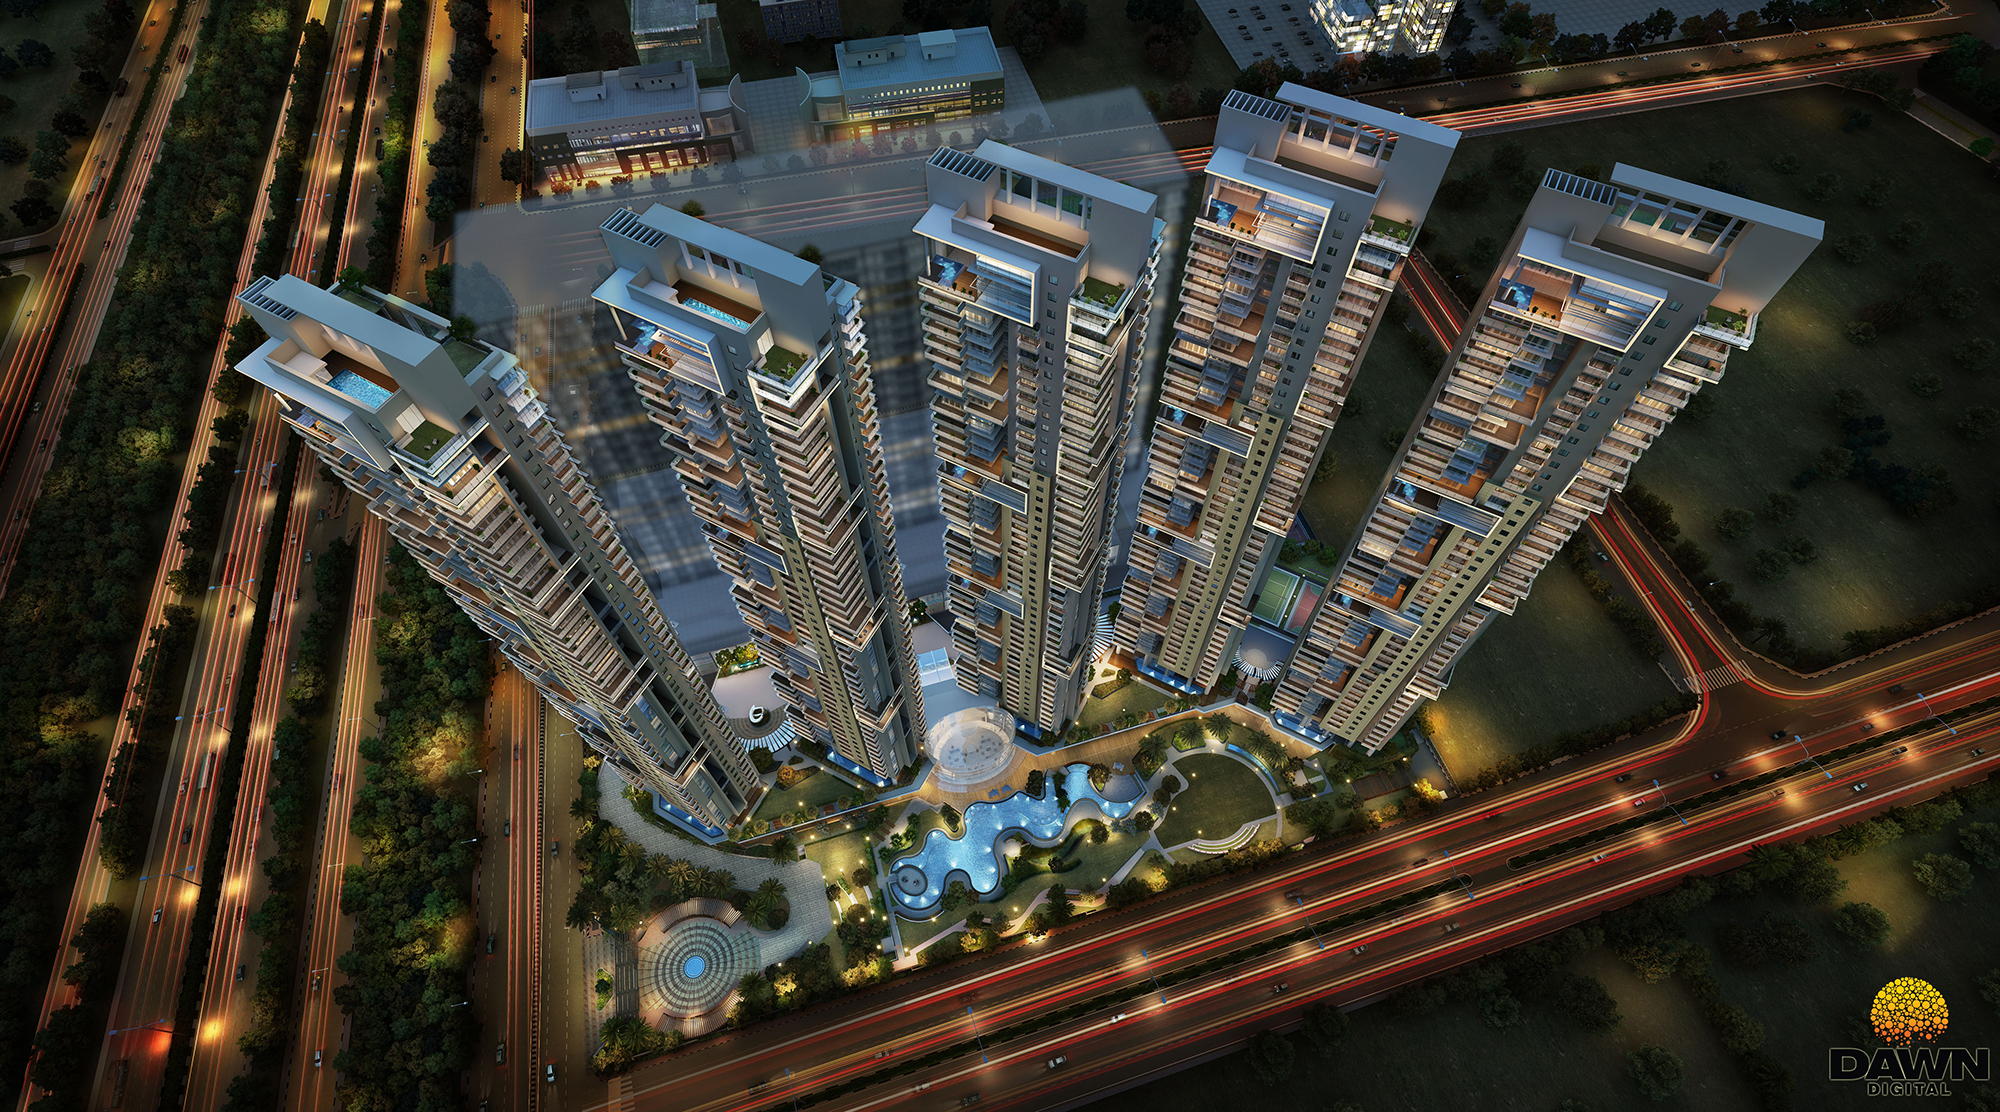 ATS KNIGHTBRIDGE OFFERED 4,6BHK BHK LUXURY APARTMENTS AT SECTOR 124, NOIDA